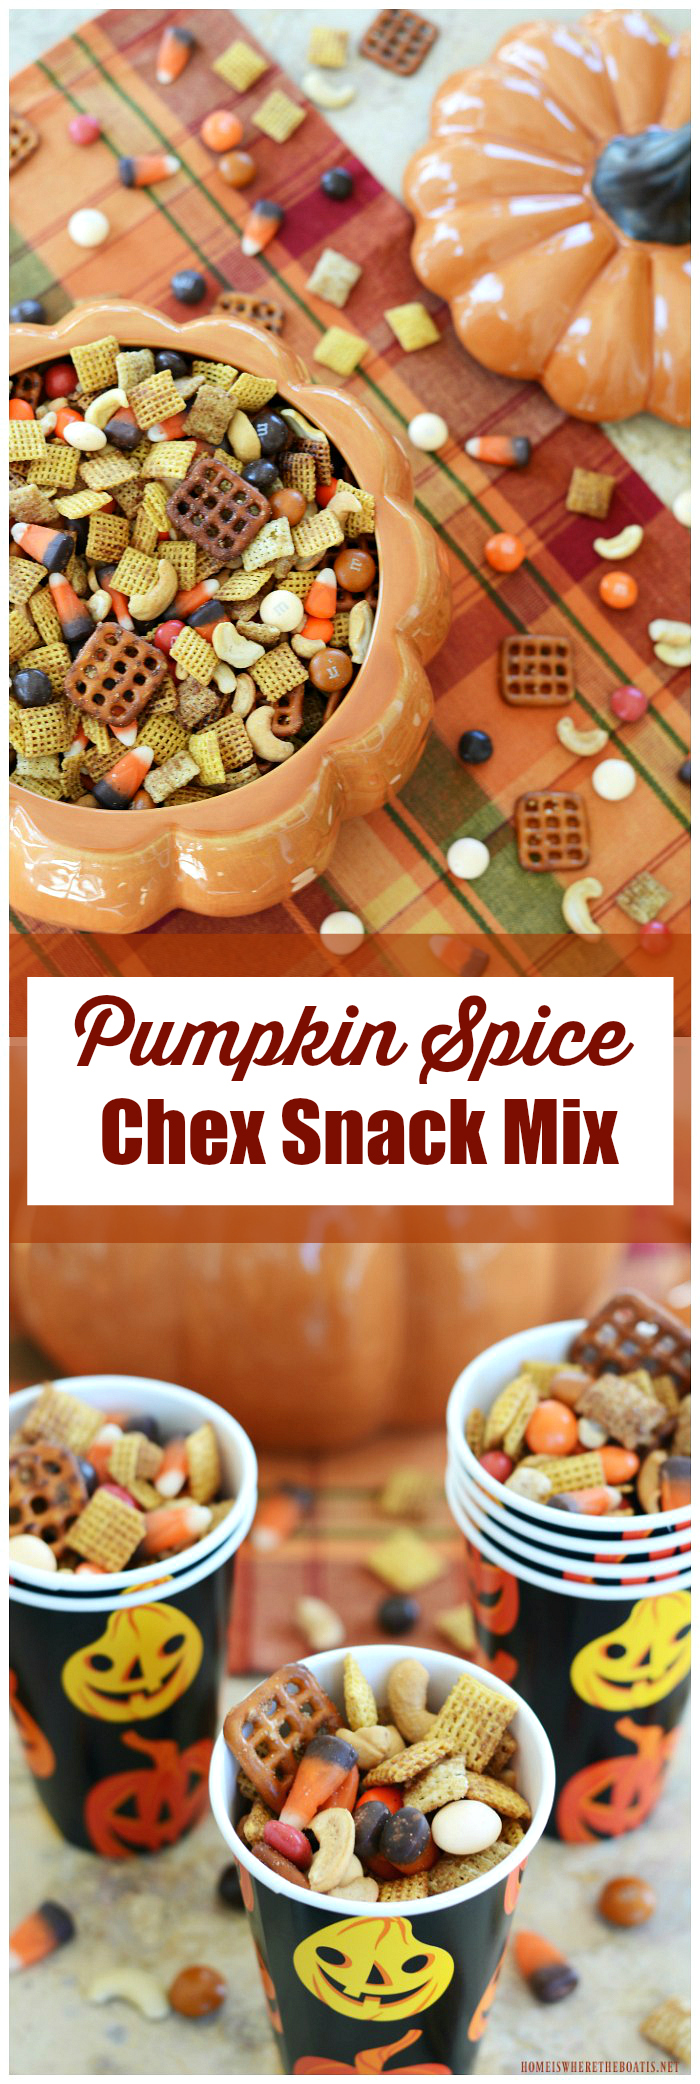 Pumpkin Spice Chex Snack Mix | ©homeiswheretheboatis.net #fall #snack #easy #chex #pumpkinspice #halloween